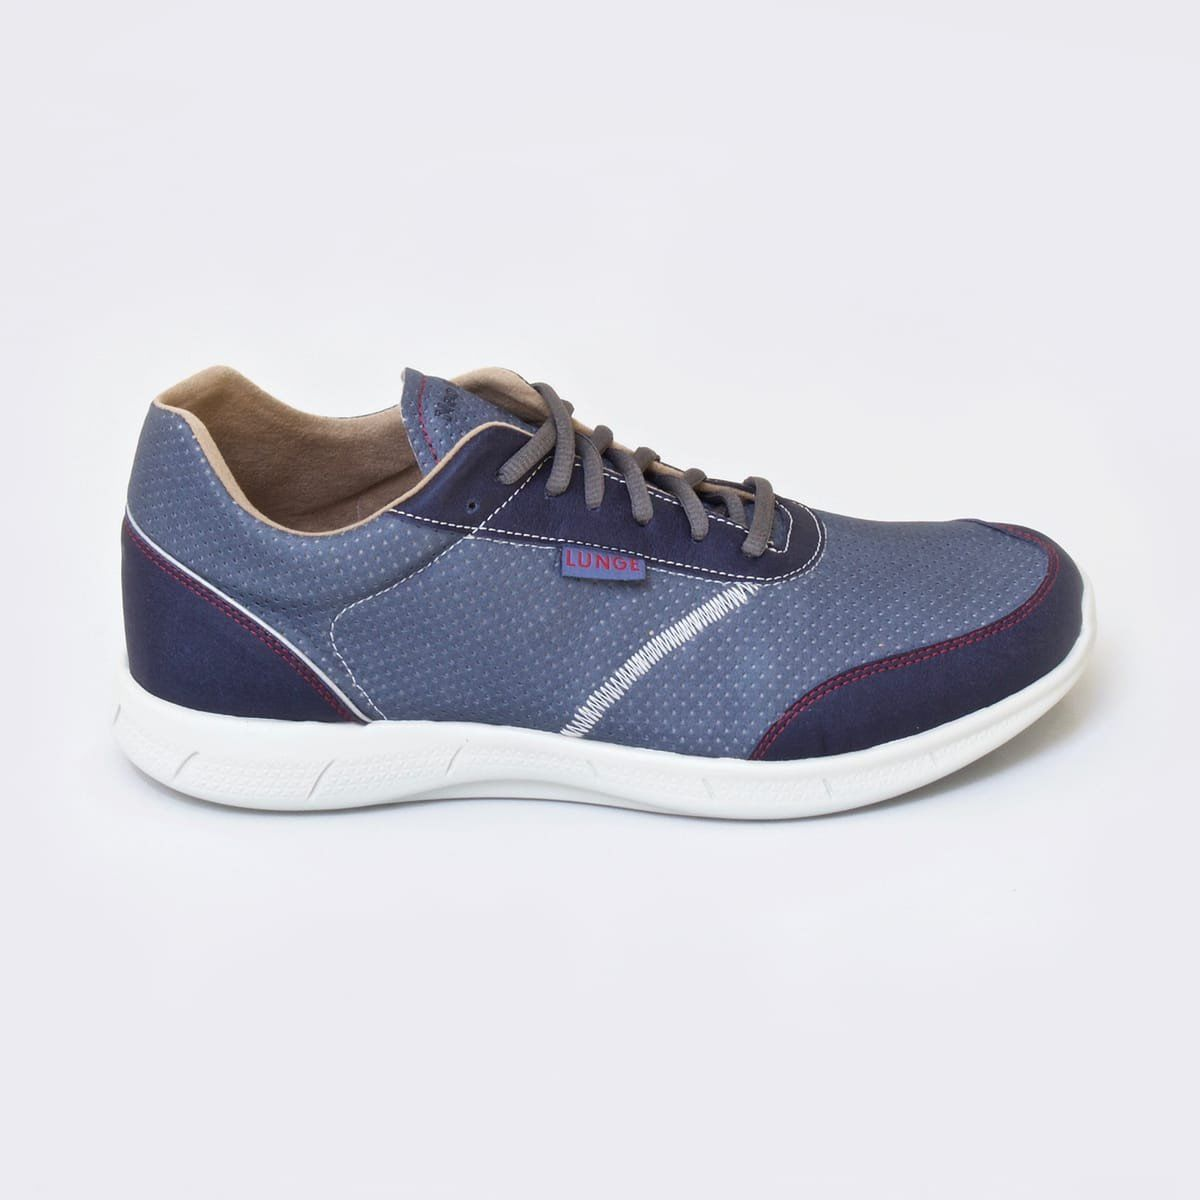 Lunge Neo Walk in Blau